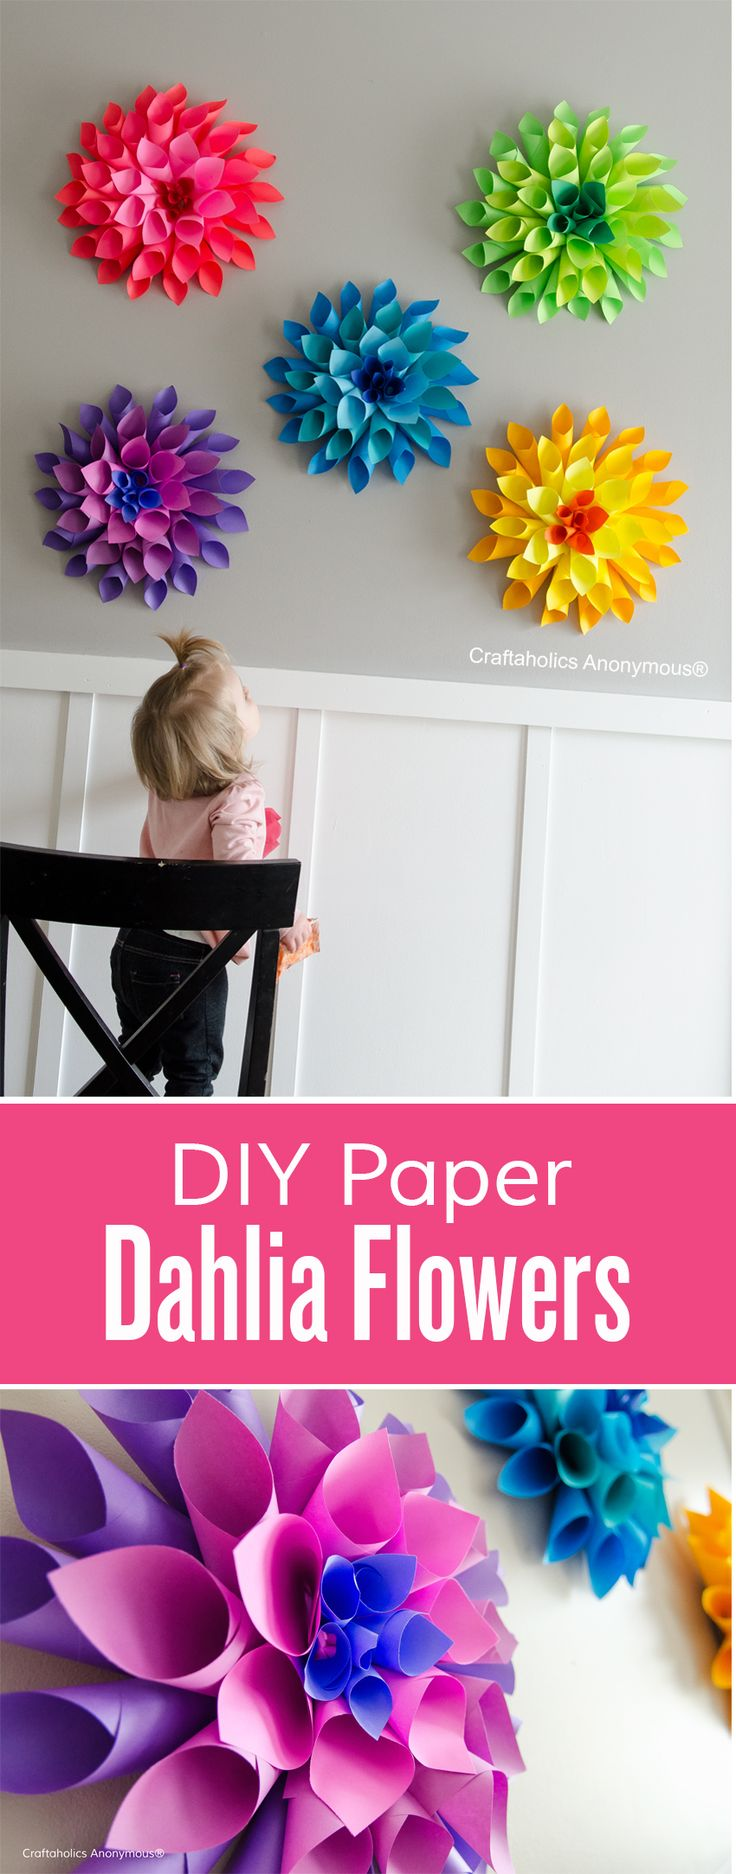 DIY Paper Dahlia Flowers Tutorial